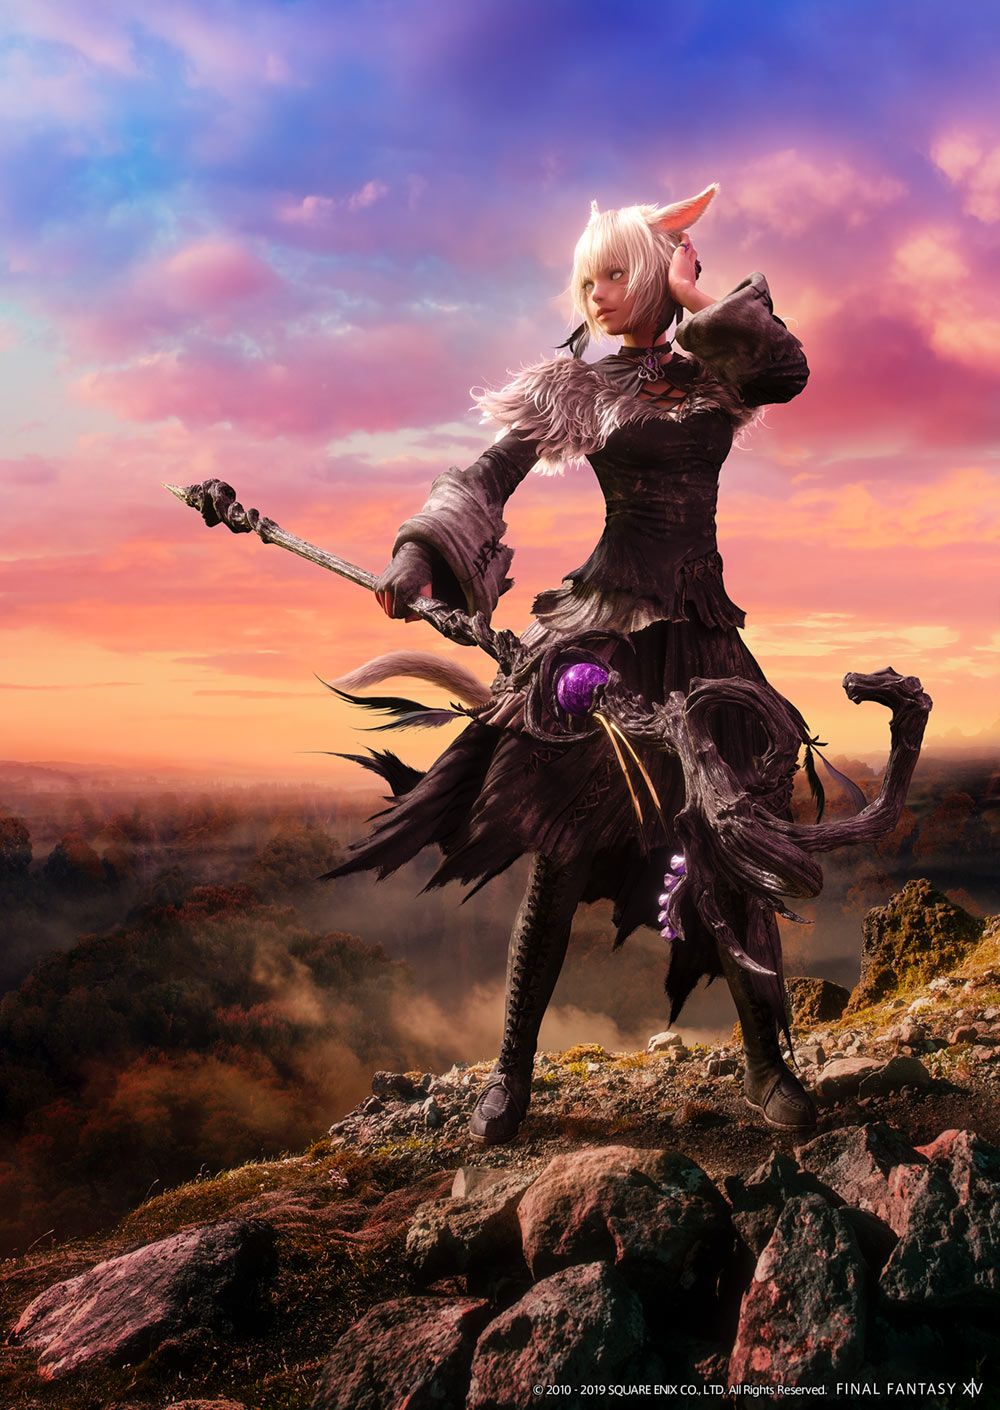 Y Shtola Black Mage Cg Art From Final Fantasy Xiv Shadowbringers